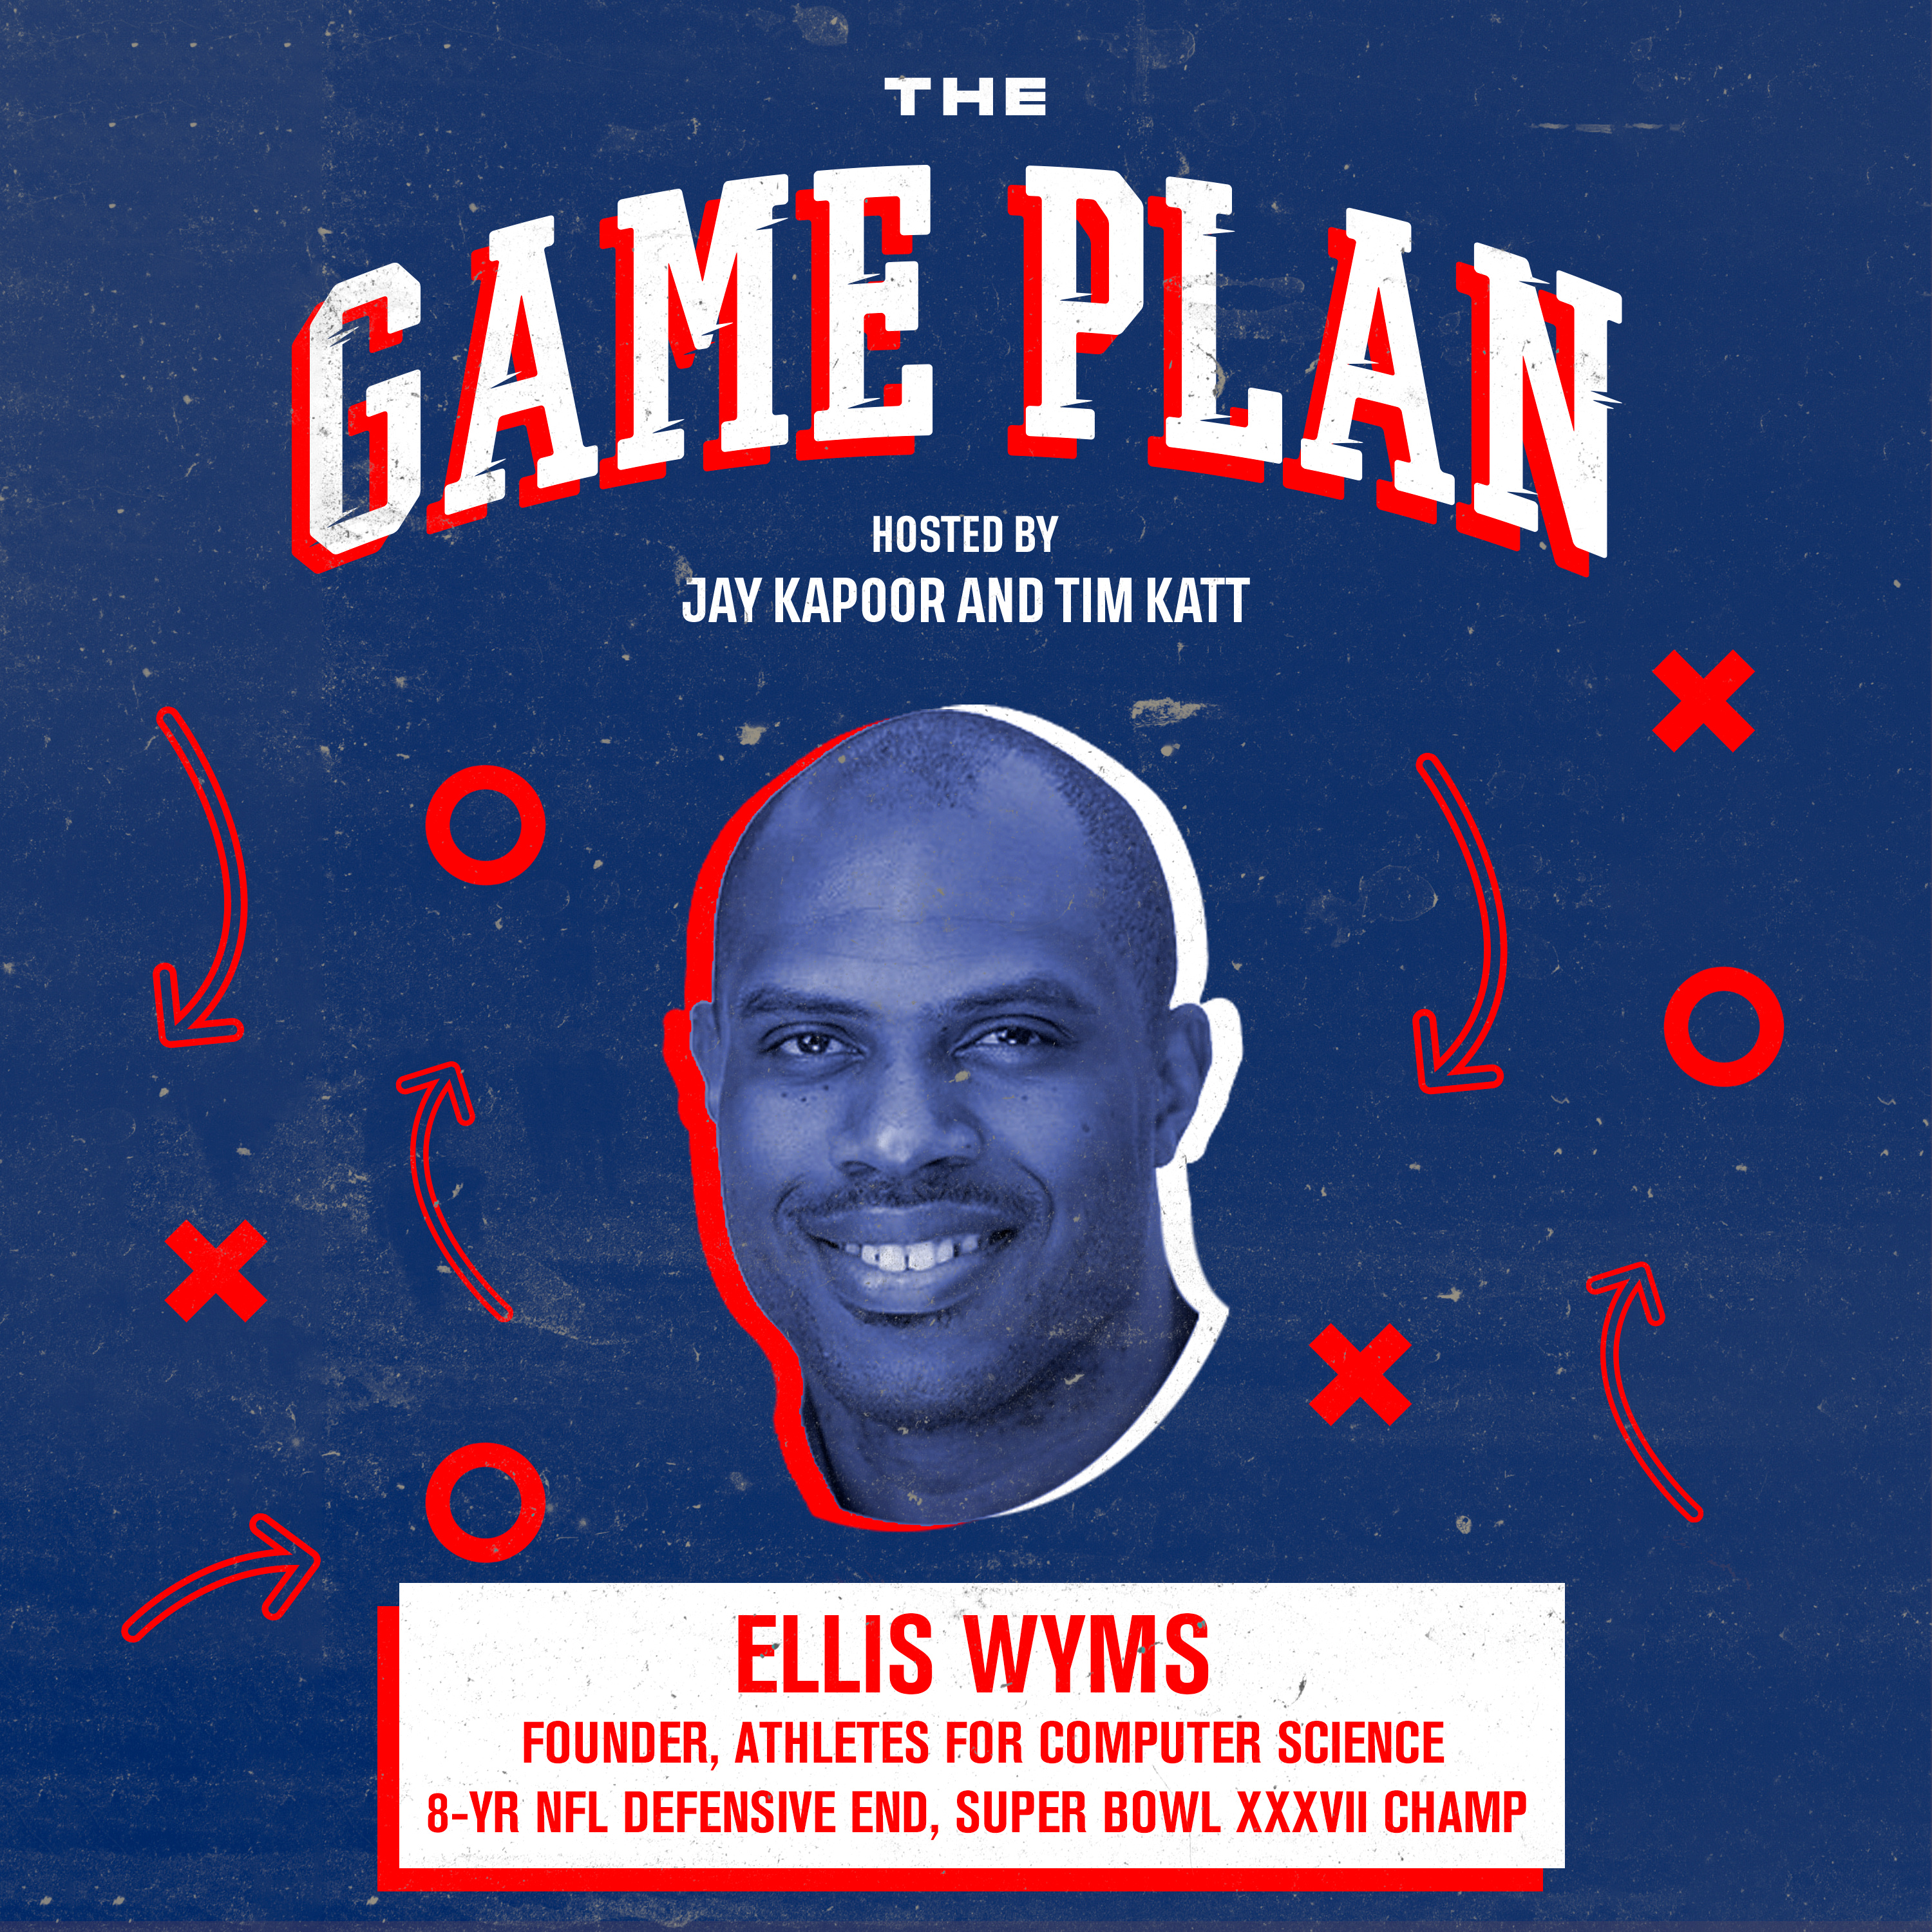 Ellis Wyms — Versatility on the Defensive Line and in Starting Education Non-Profits